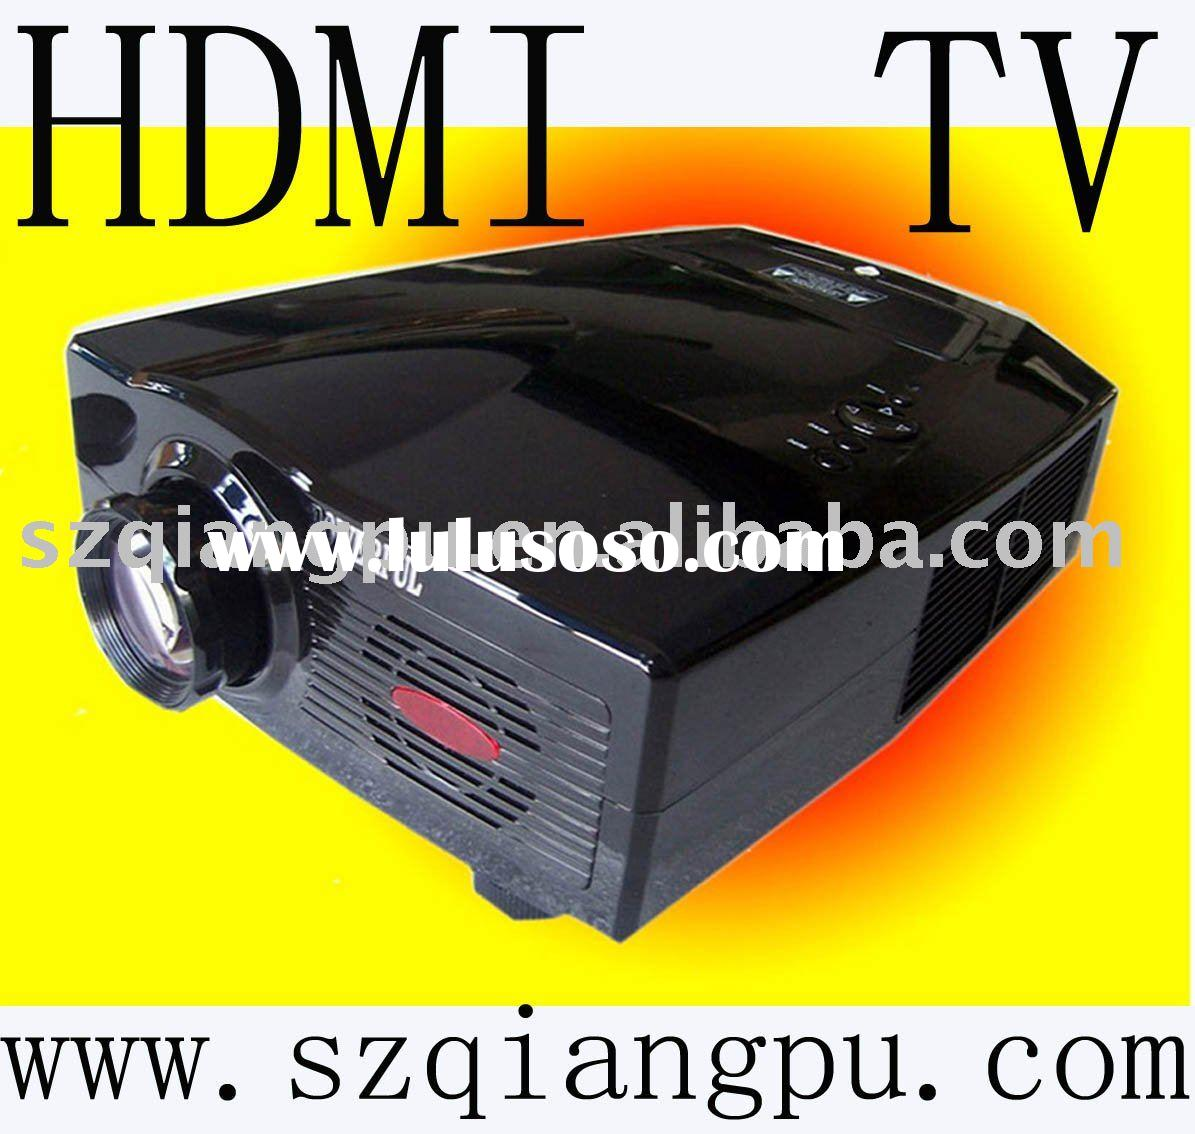 Lcd multimedia hd projector support DVD,PC,LAPTOP,TV,XBOX,PS,WII